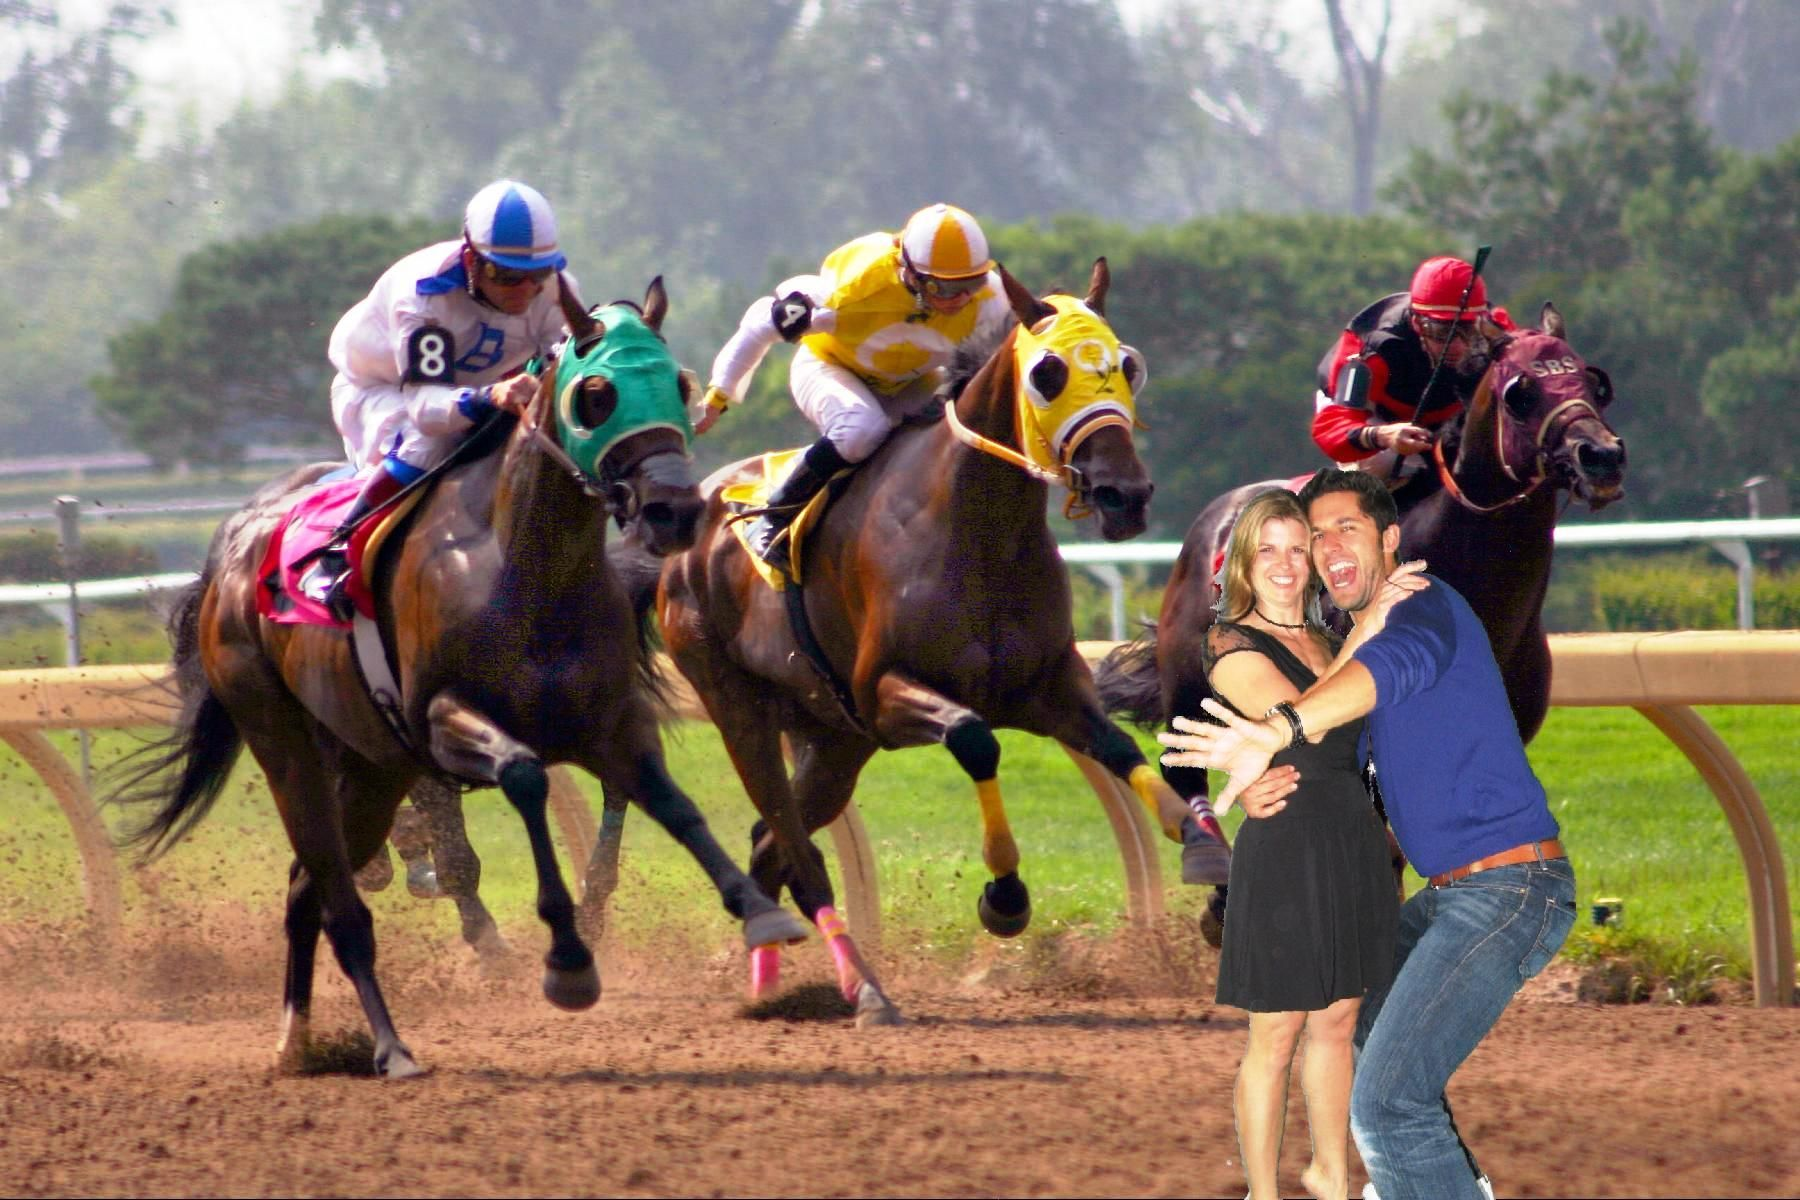 Derby Race Green Screen Background Chicago Party Rentals Horse Competition Horses Racing Posters